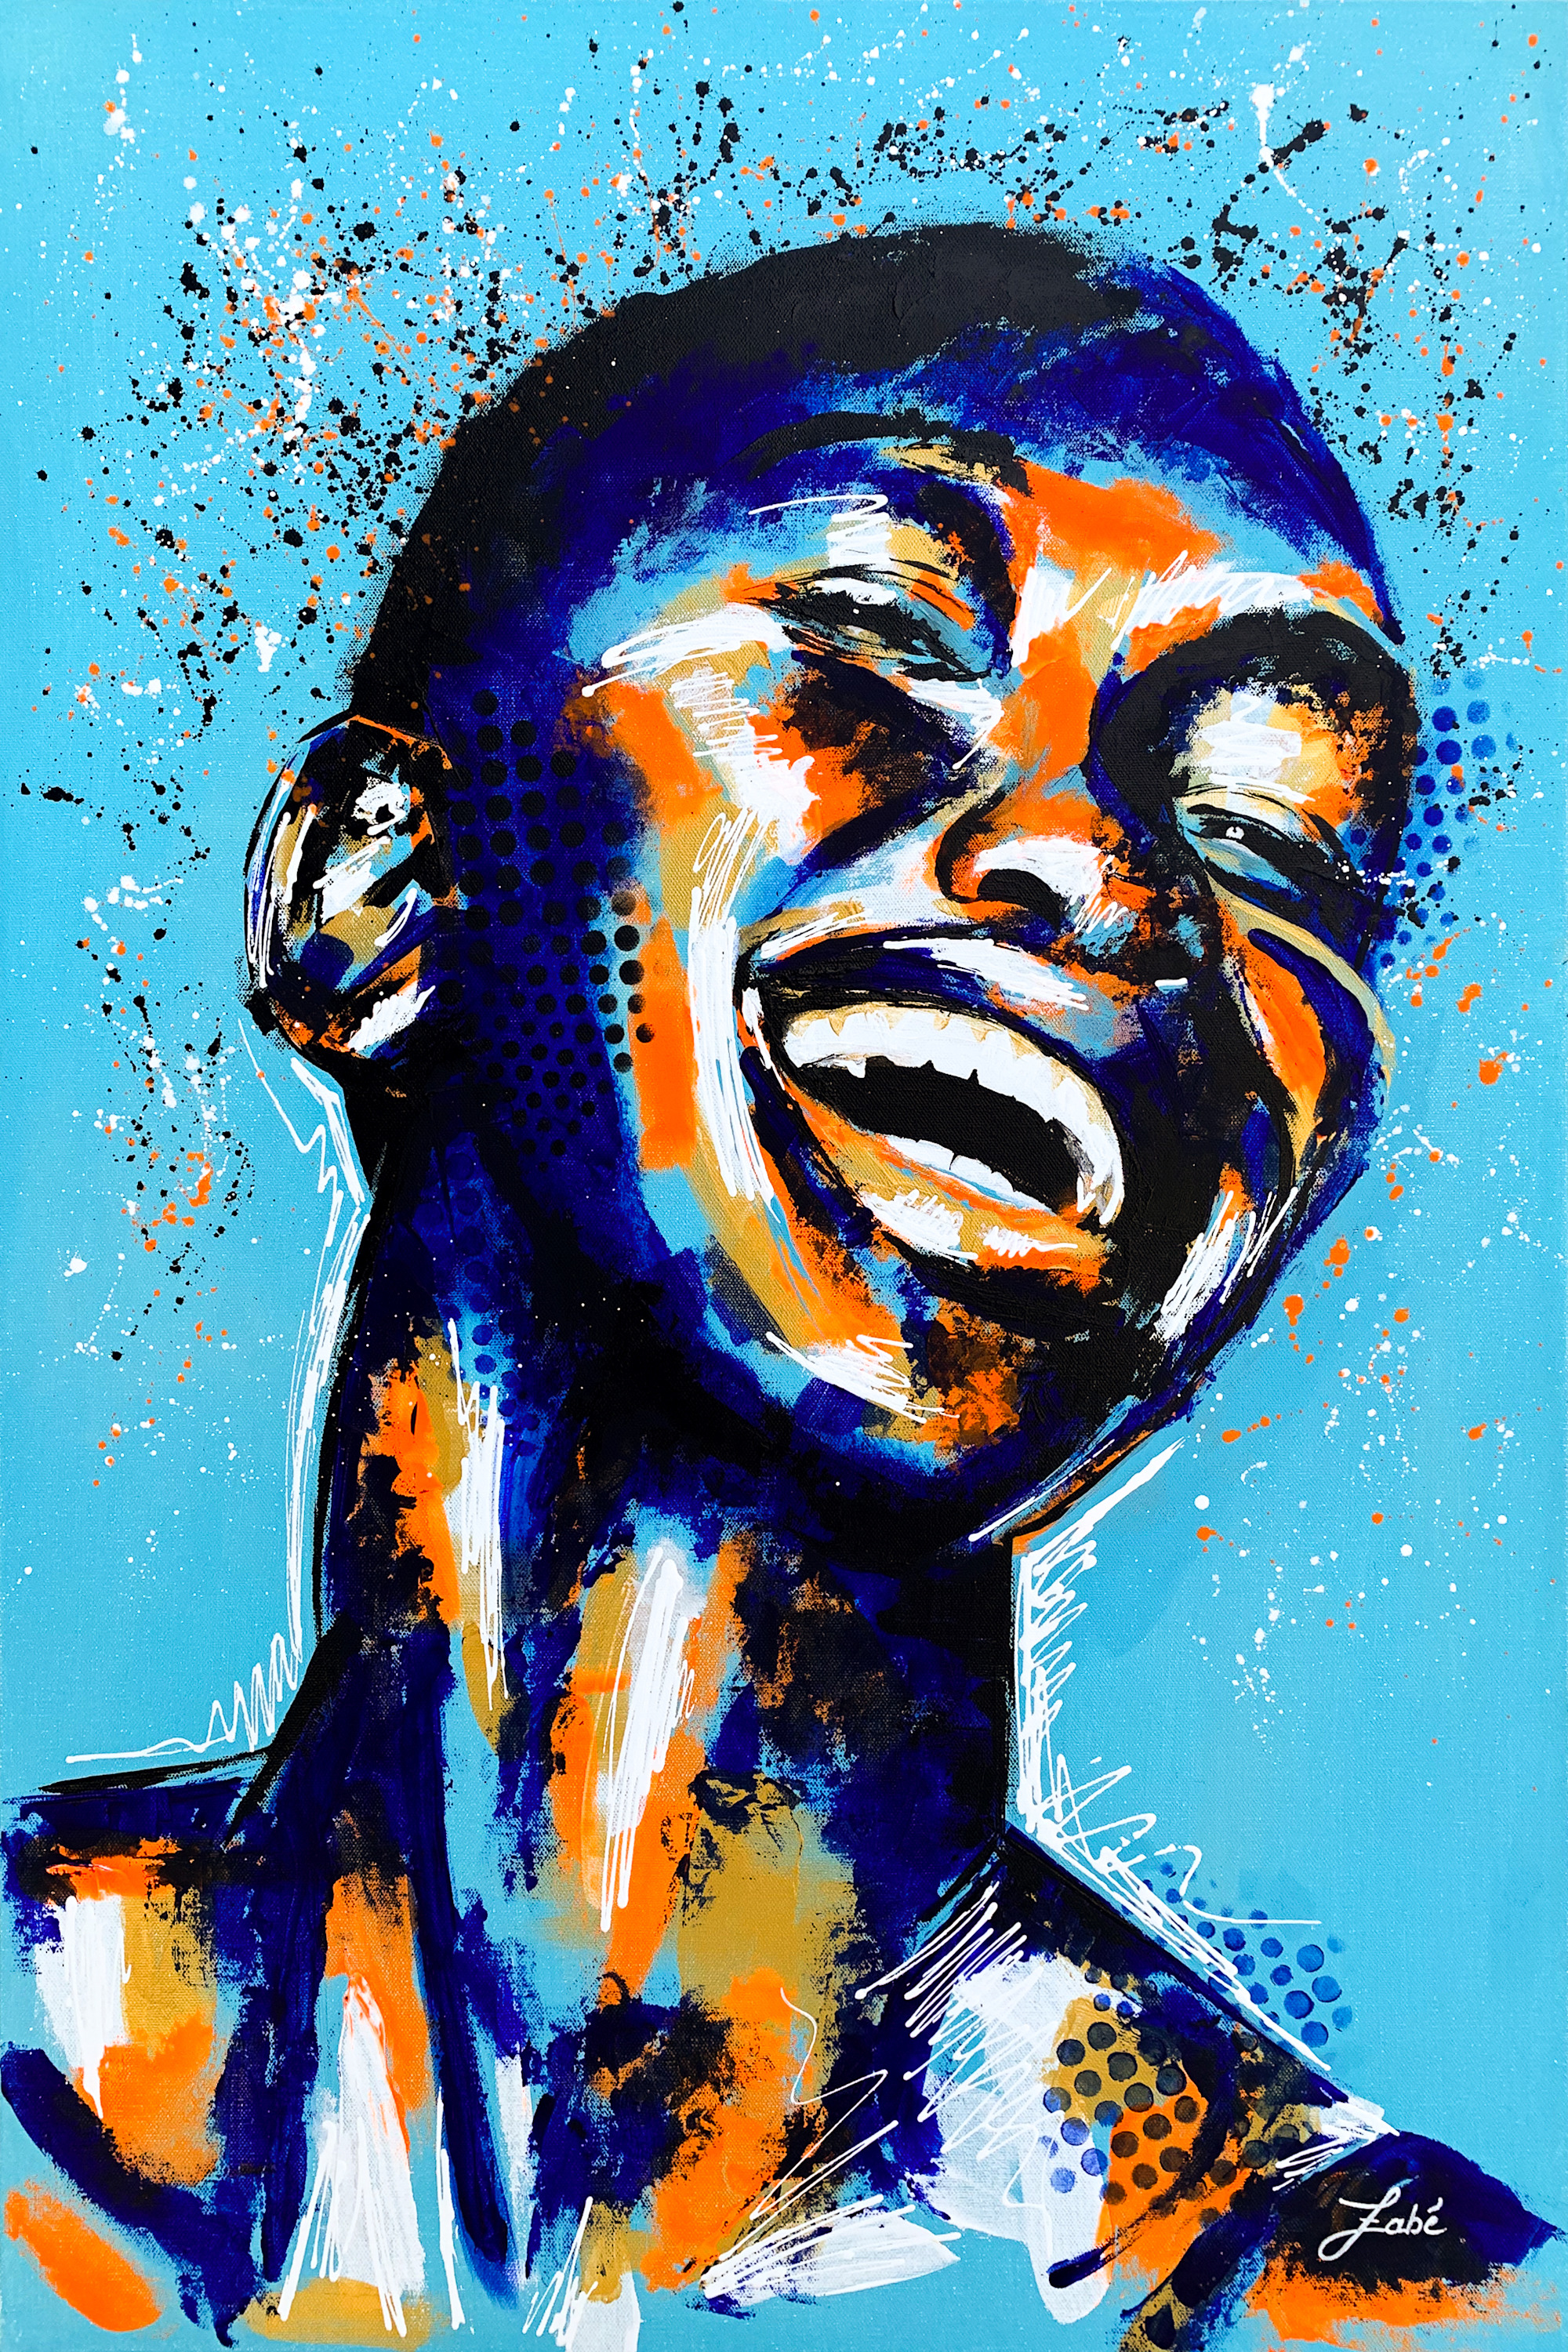 24x36 zabe arts acrylic painting blue laughter fybspg